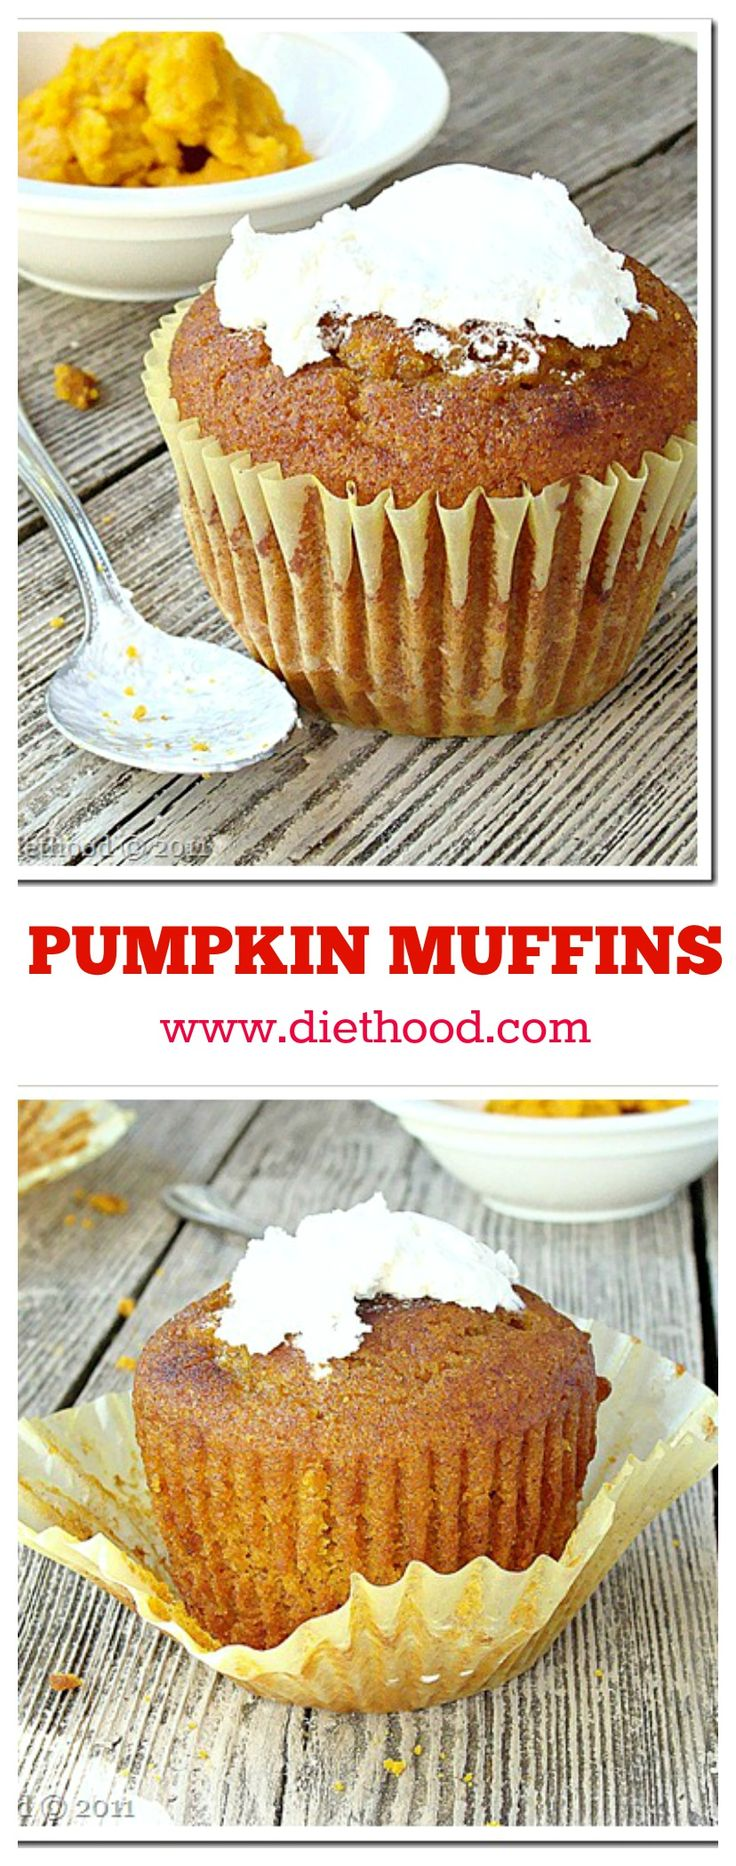 Pumpkin Muffins - The best Muffins on the planet!!